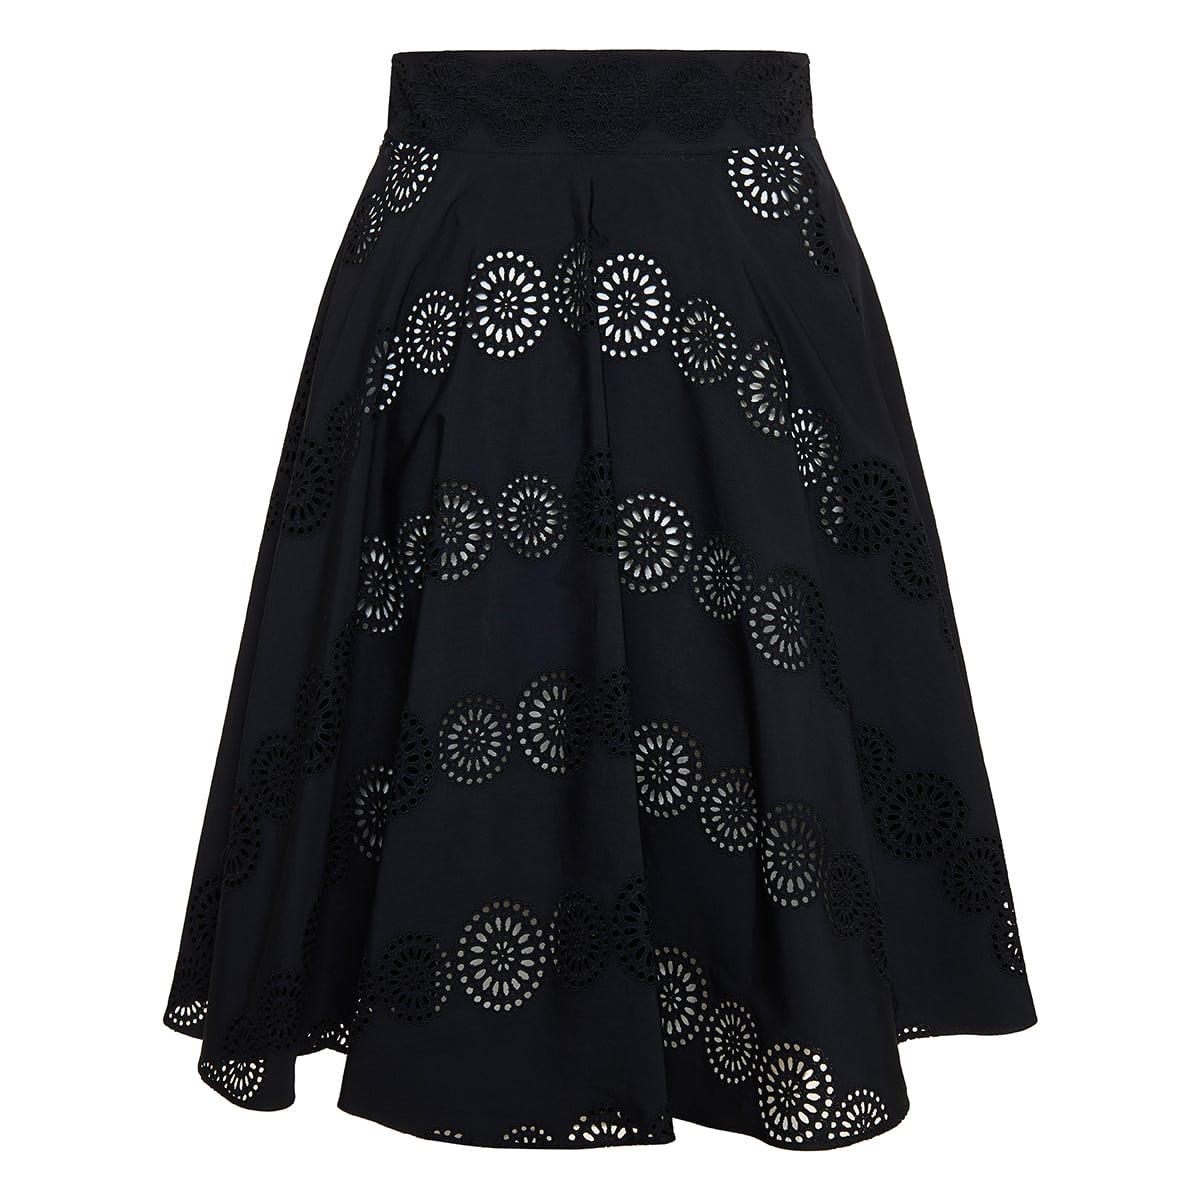 Broderie anglaise pleated cotton skirt